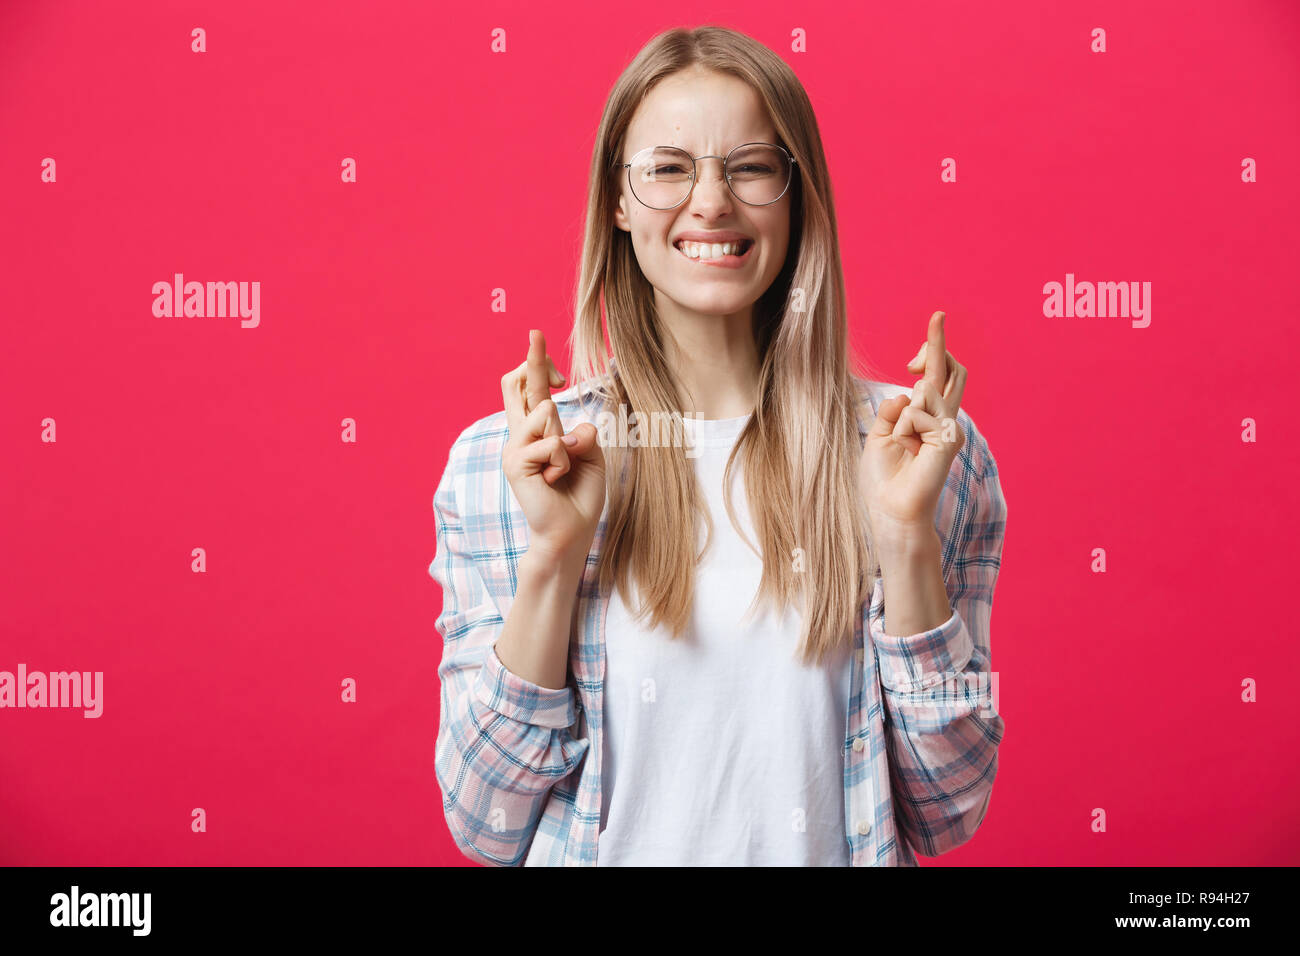 Portrait of wishful young woman in casual clothes with blonde dyed hair, crossing her fingers, biting her lower lip, feeling nervous before important event. Body language. - Stock Image